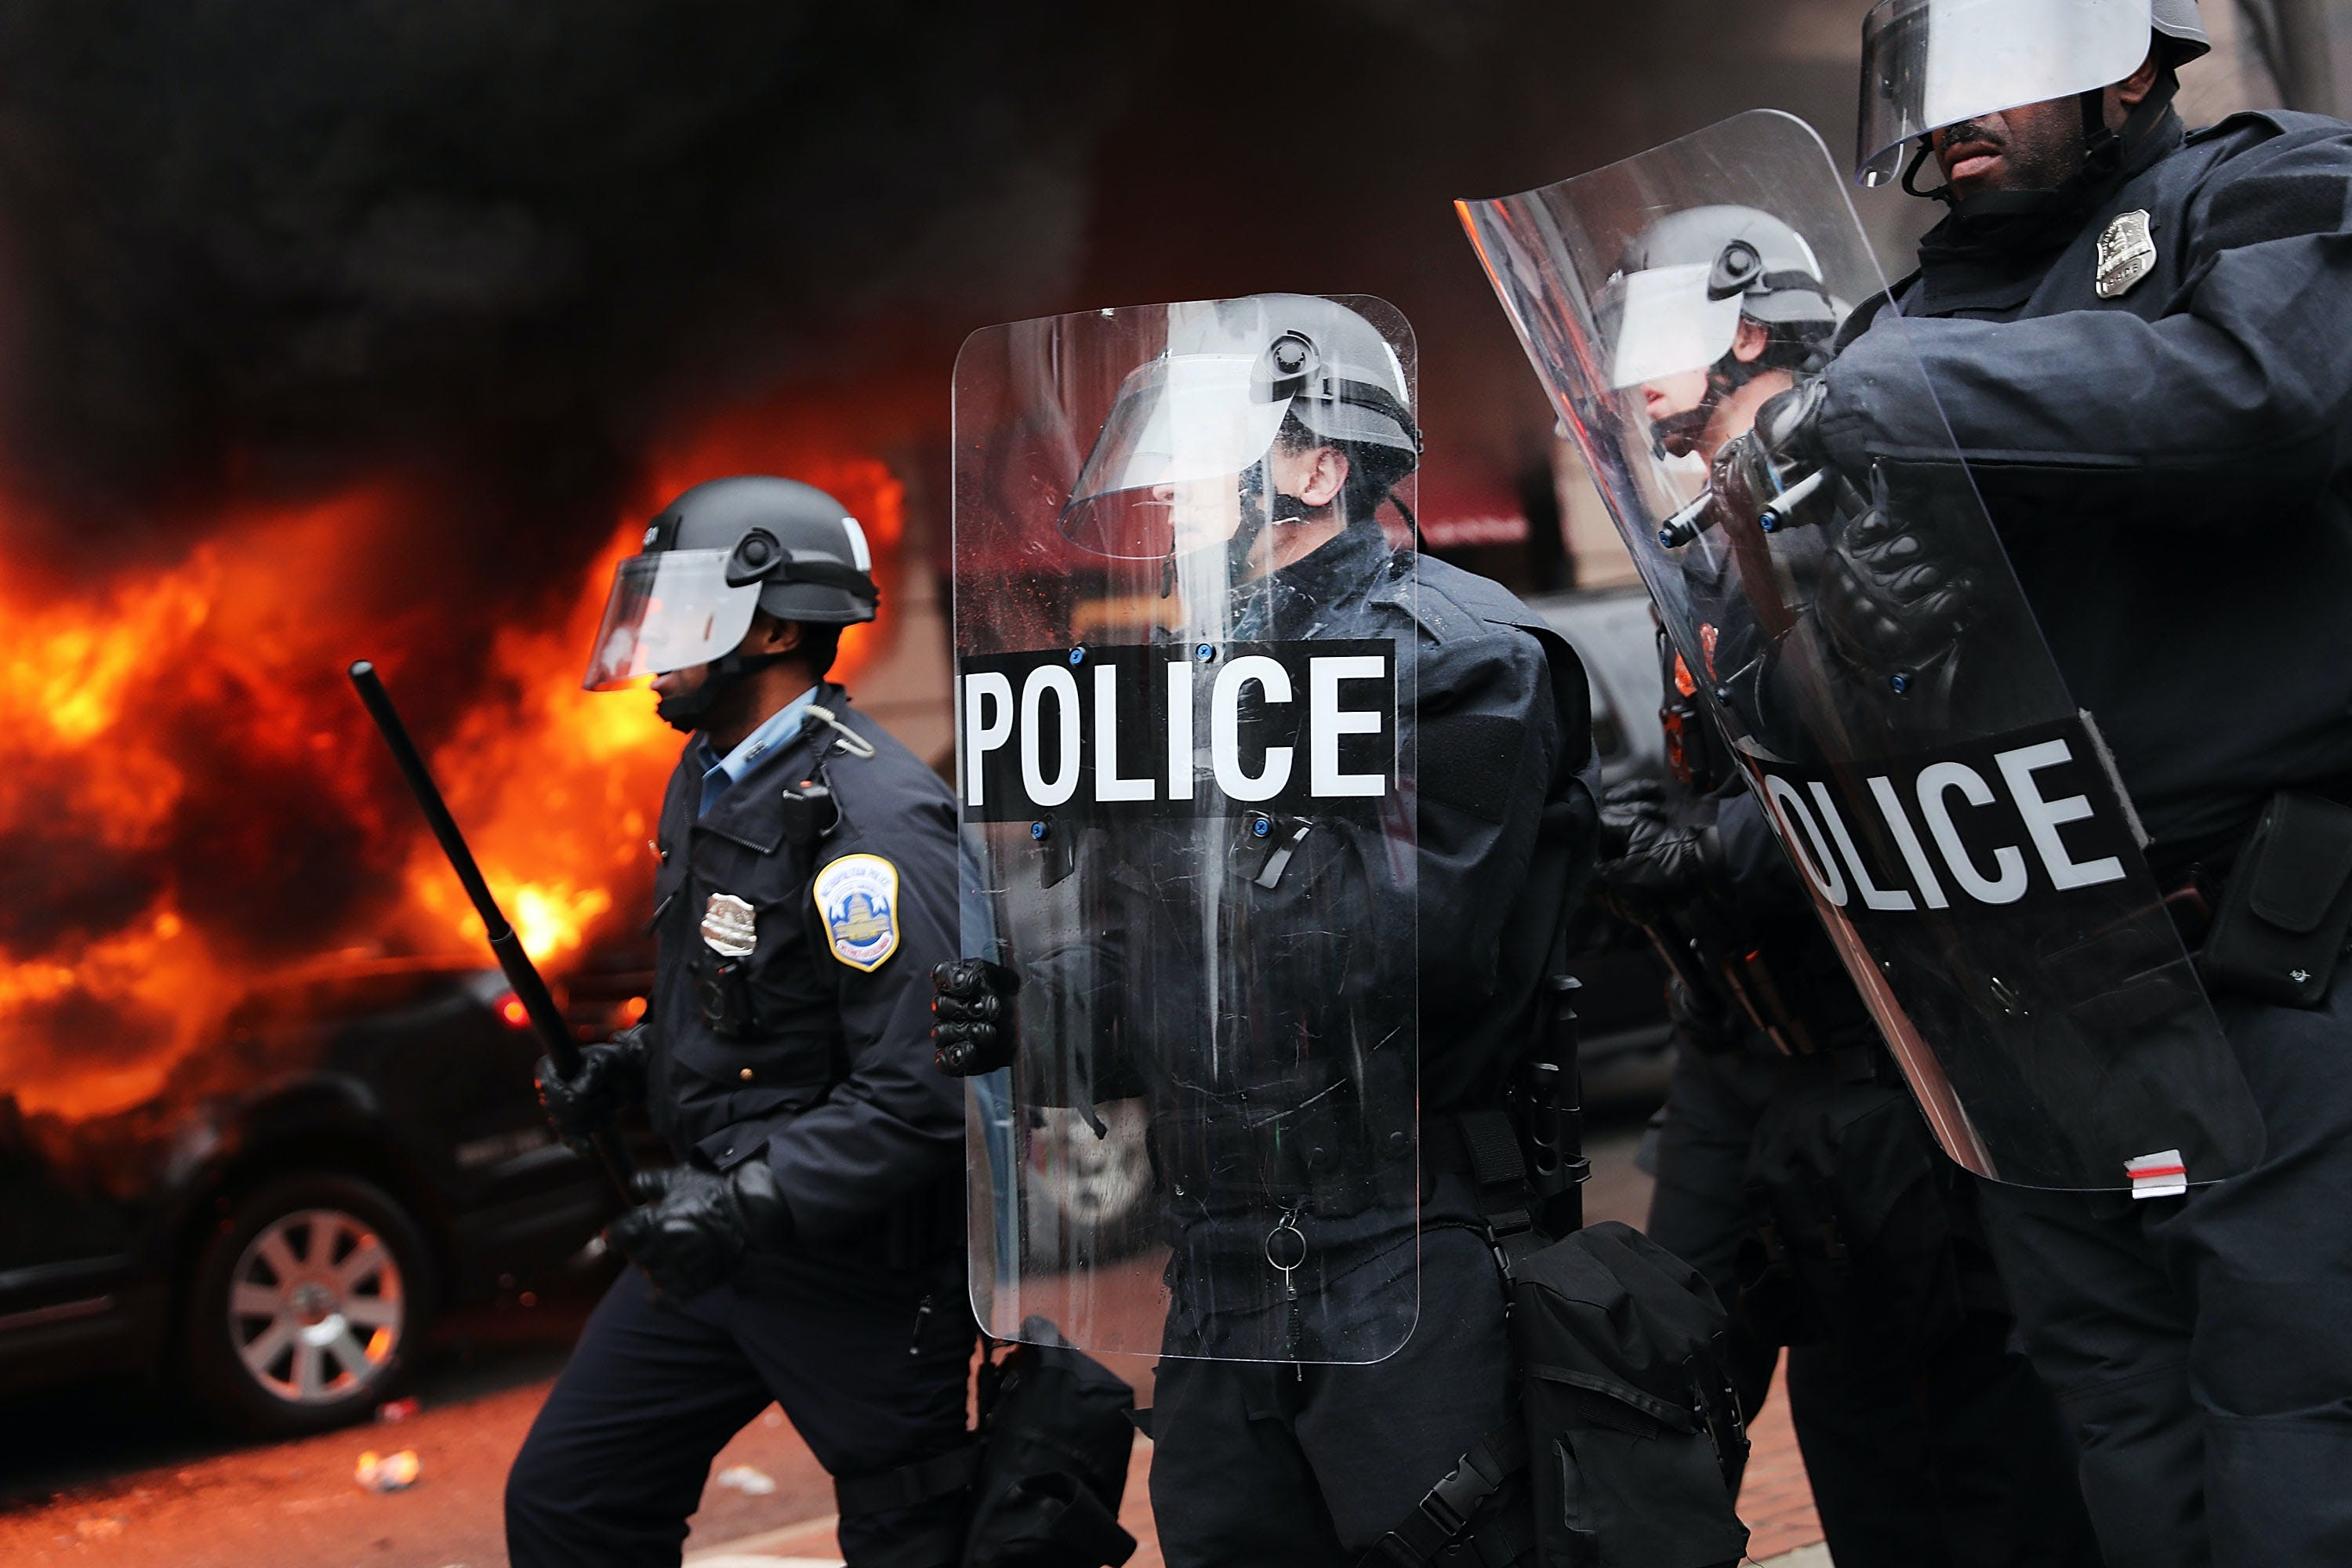 WASHINGTON, DC - JANUARY 20: Police and demonstrators clash in downtown Washington after a limo was set on fire following the inauguration of President Donald Trump on January 20, 2017 in Washington, DC. (Photo by Spencer Platt/Getty Images)